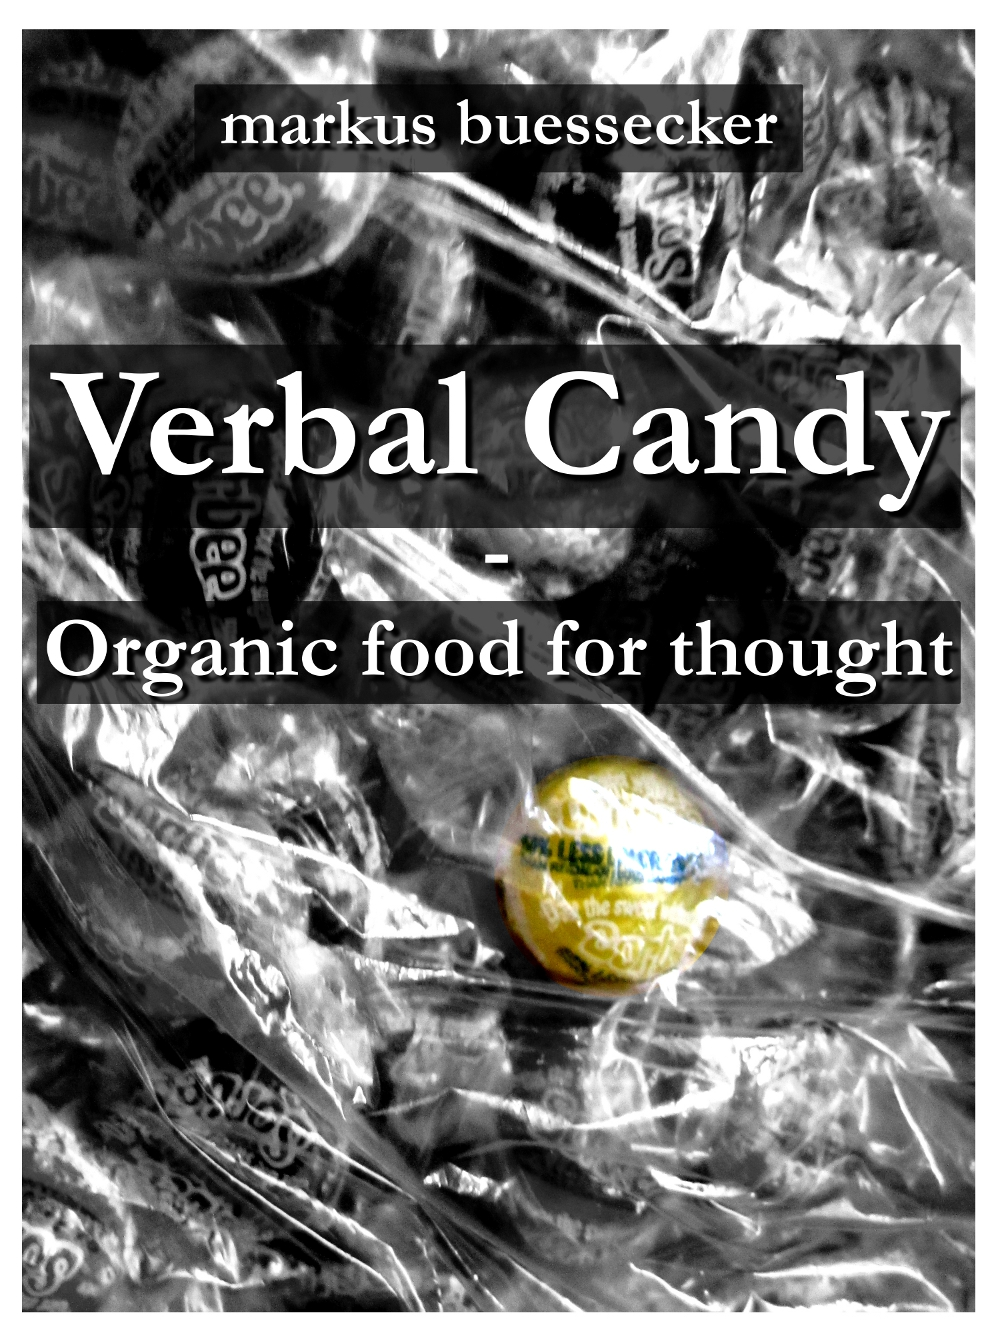 Verbal Candy - Organic food for thought By: Gerrit Rietveld,Markus Buessecker